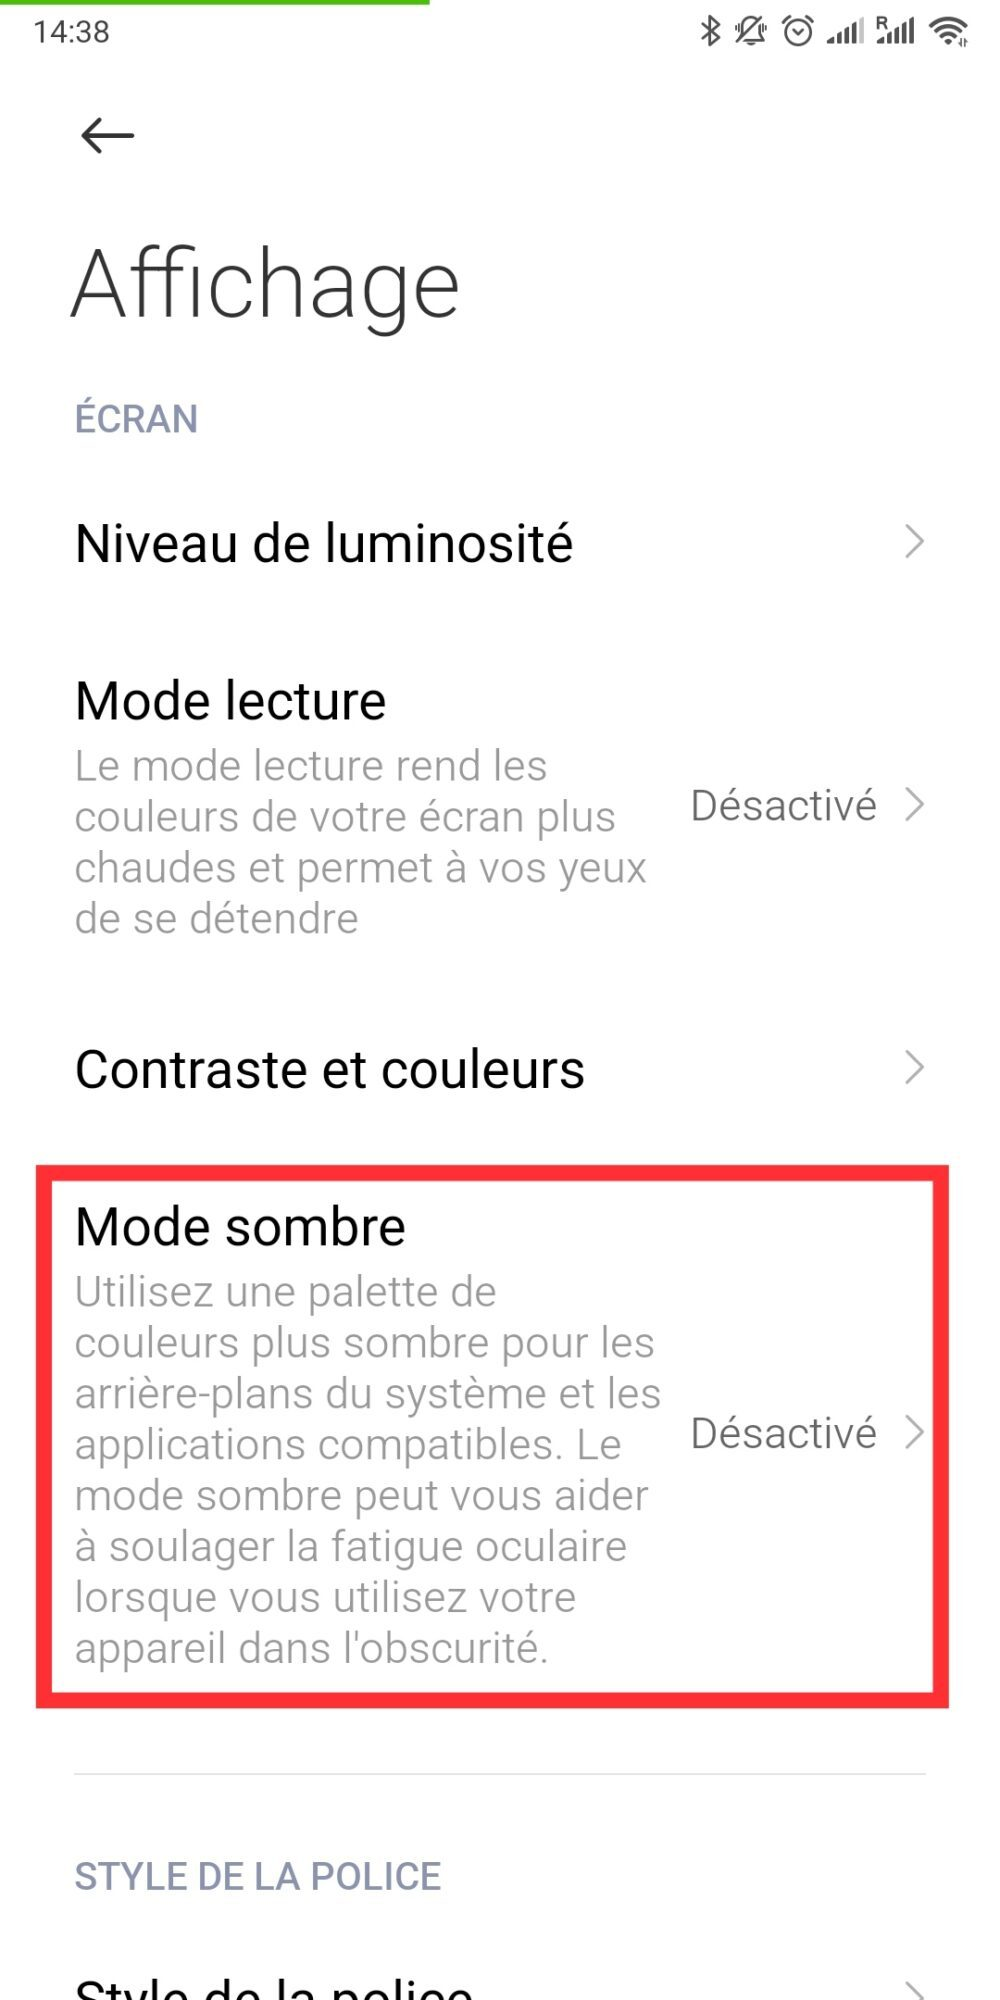 mode-sombre-affichage-parametres-smartphone-android